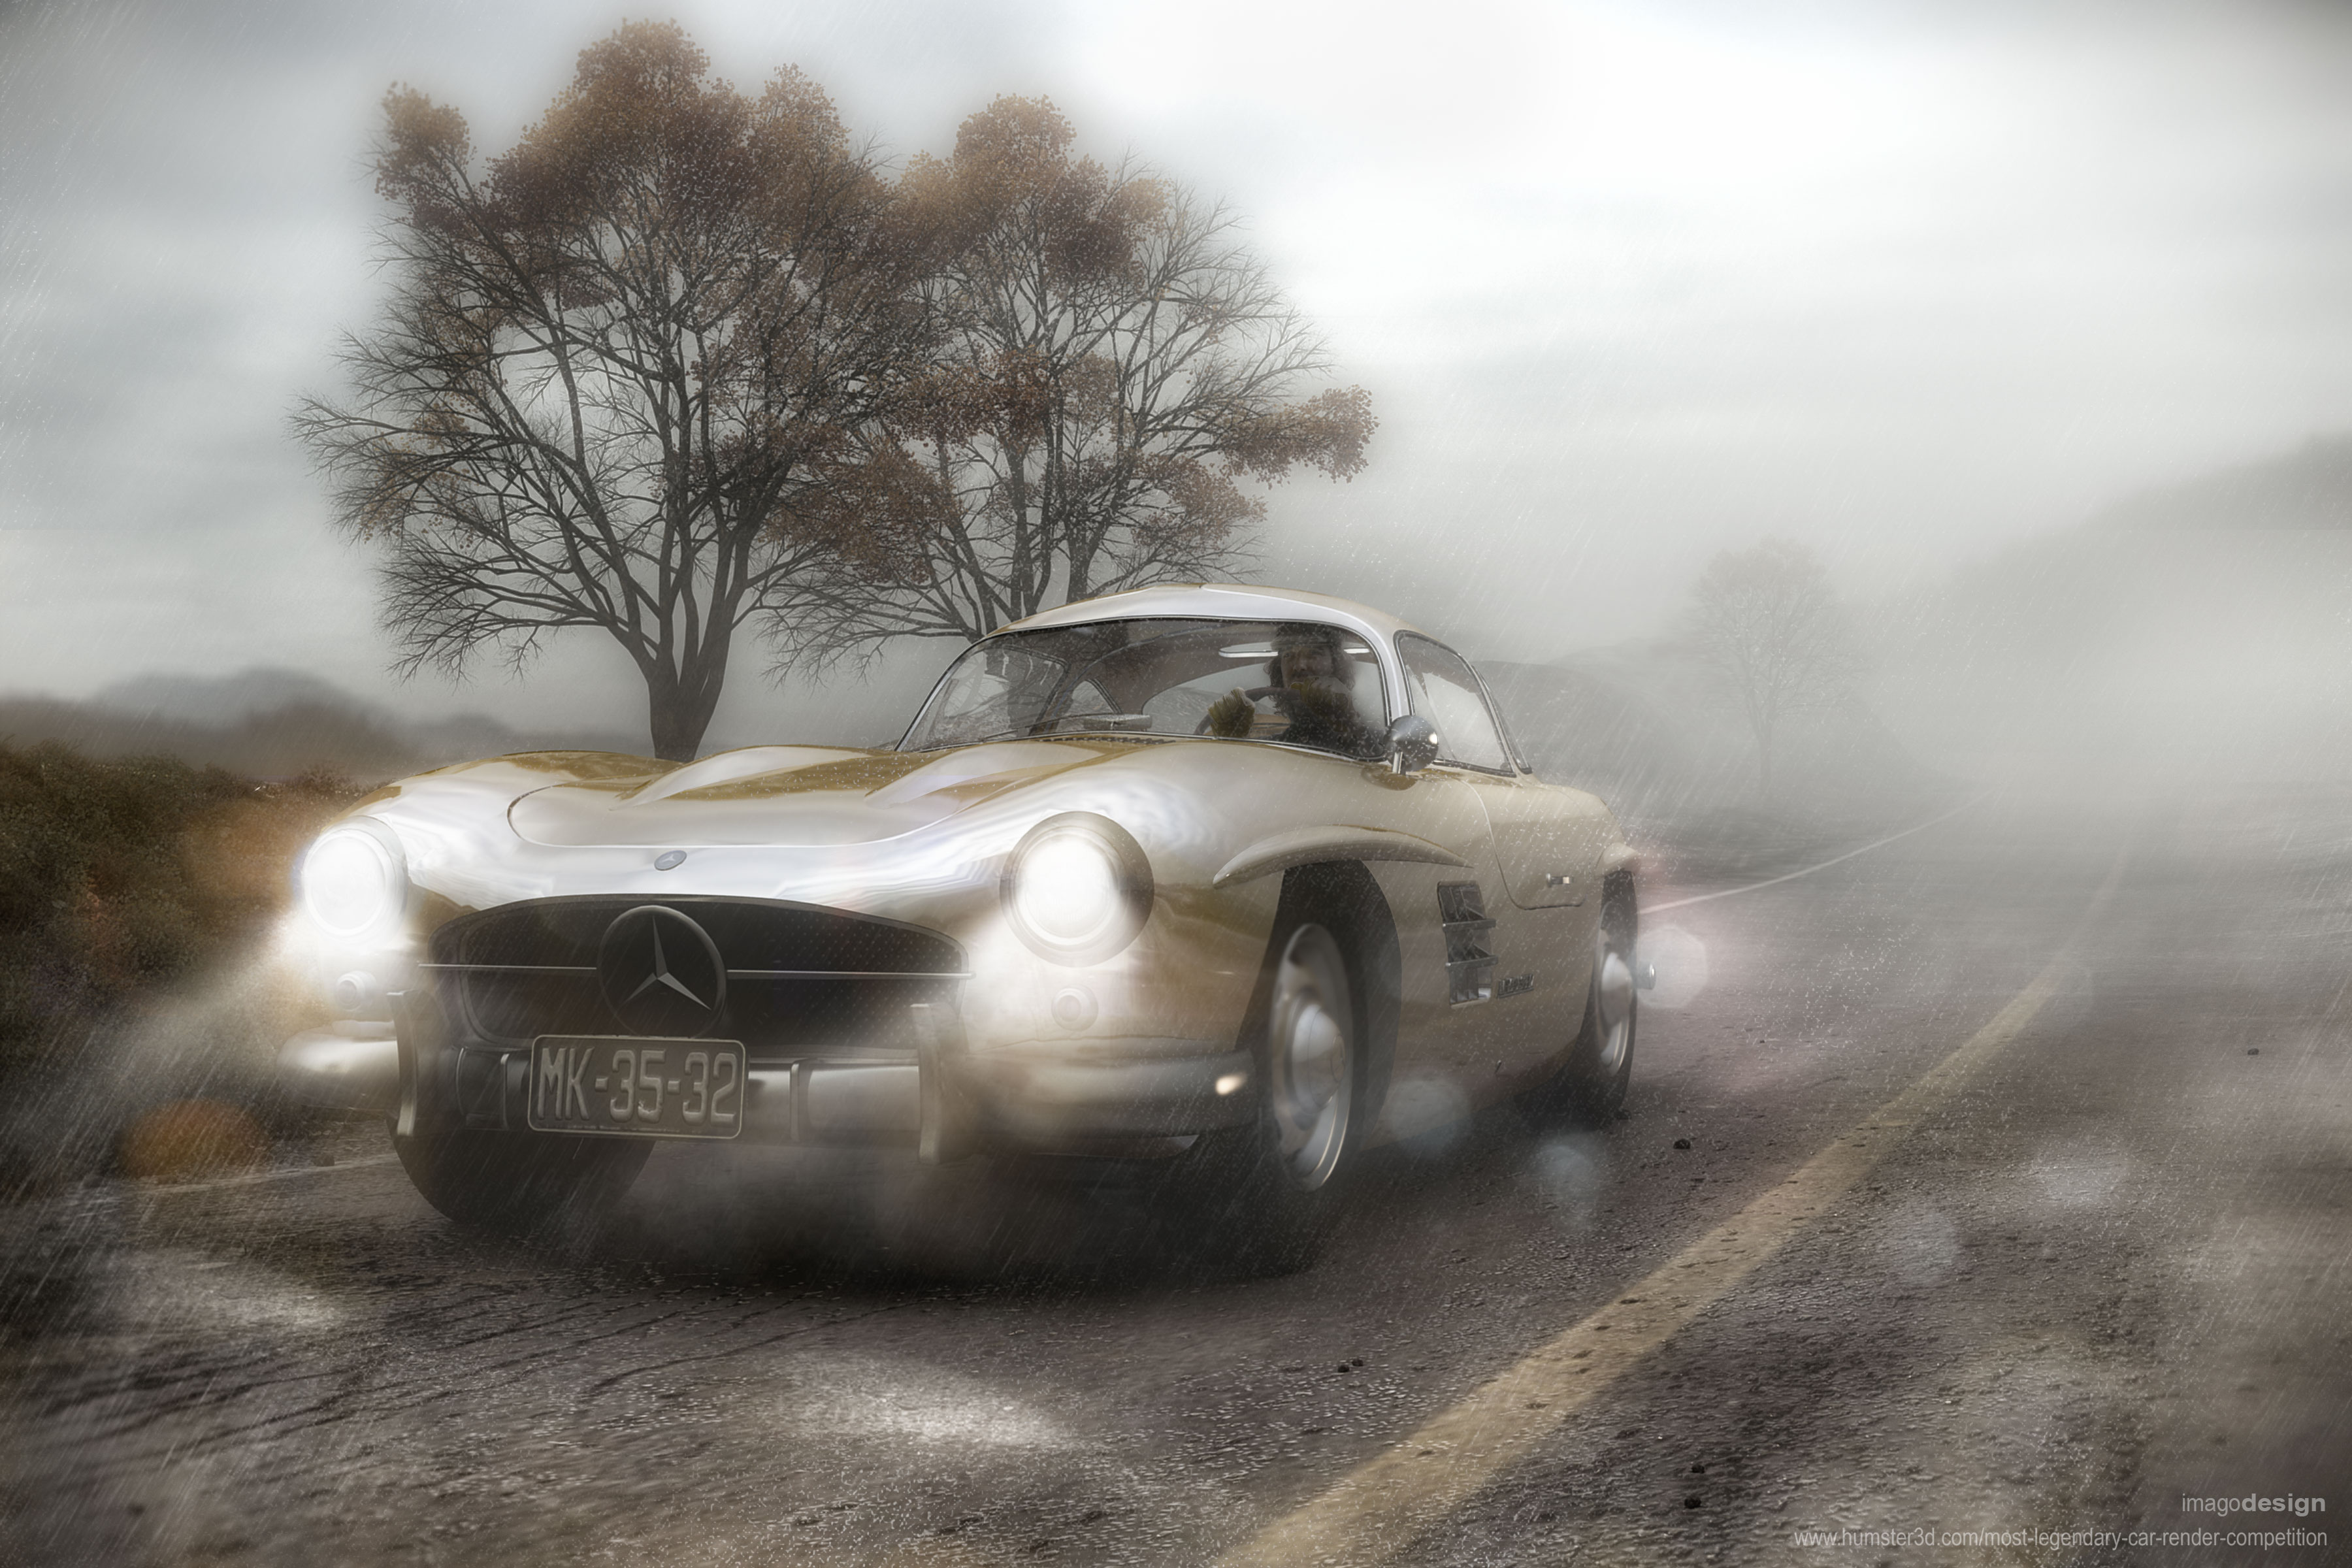 My toy car - the Gullwing